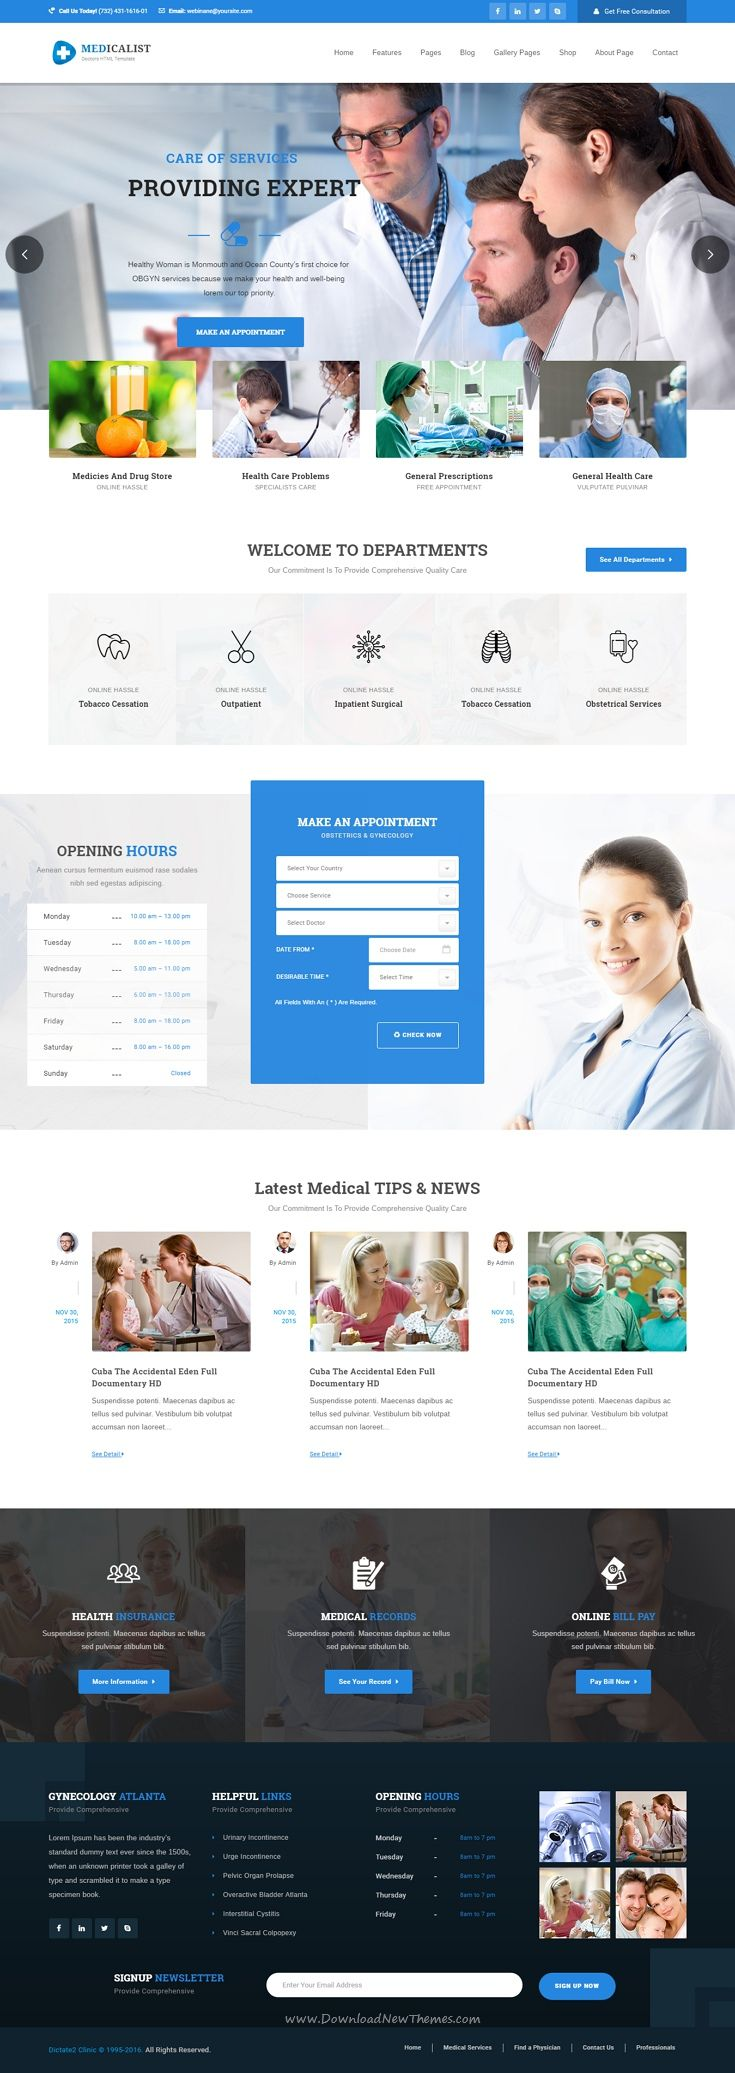 Medicalist - A Responsive HTML #Bootstrap Template for #Medical, Doctors, Dentists, Clinics and Hospitals #Website.